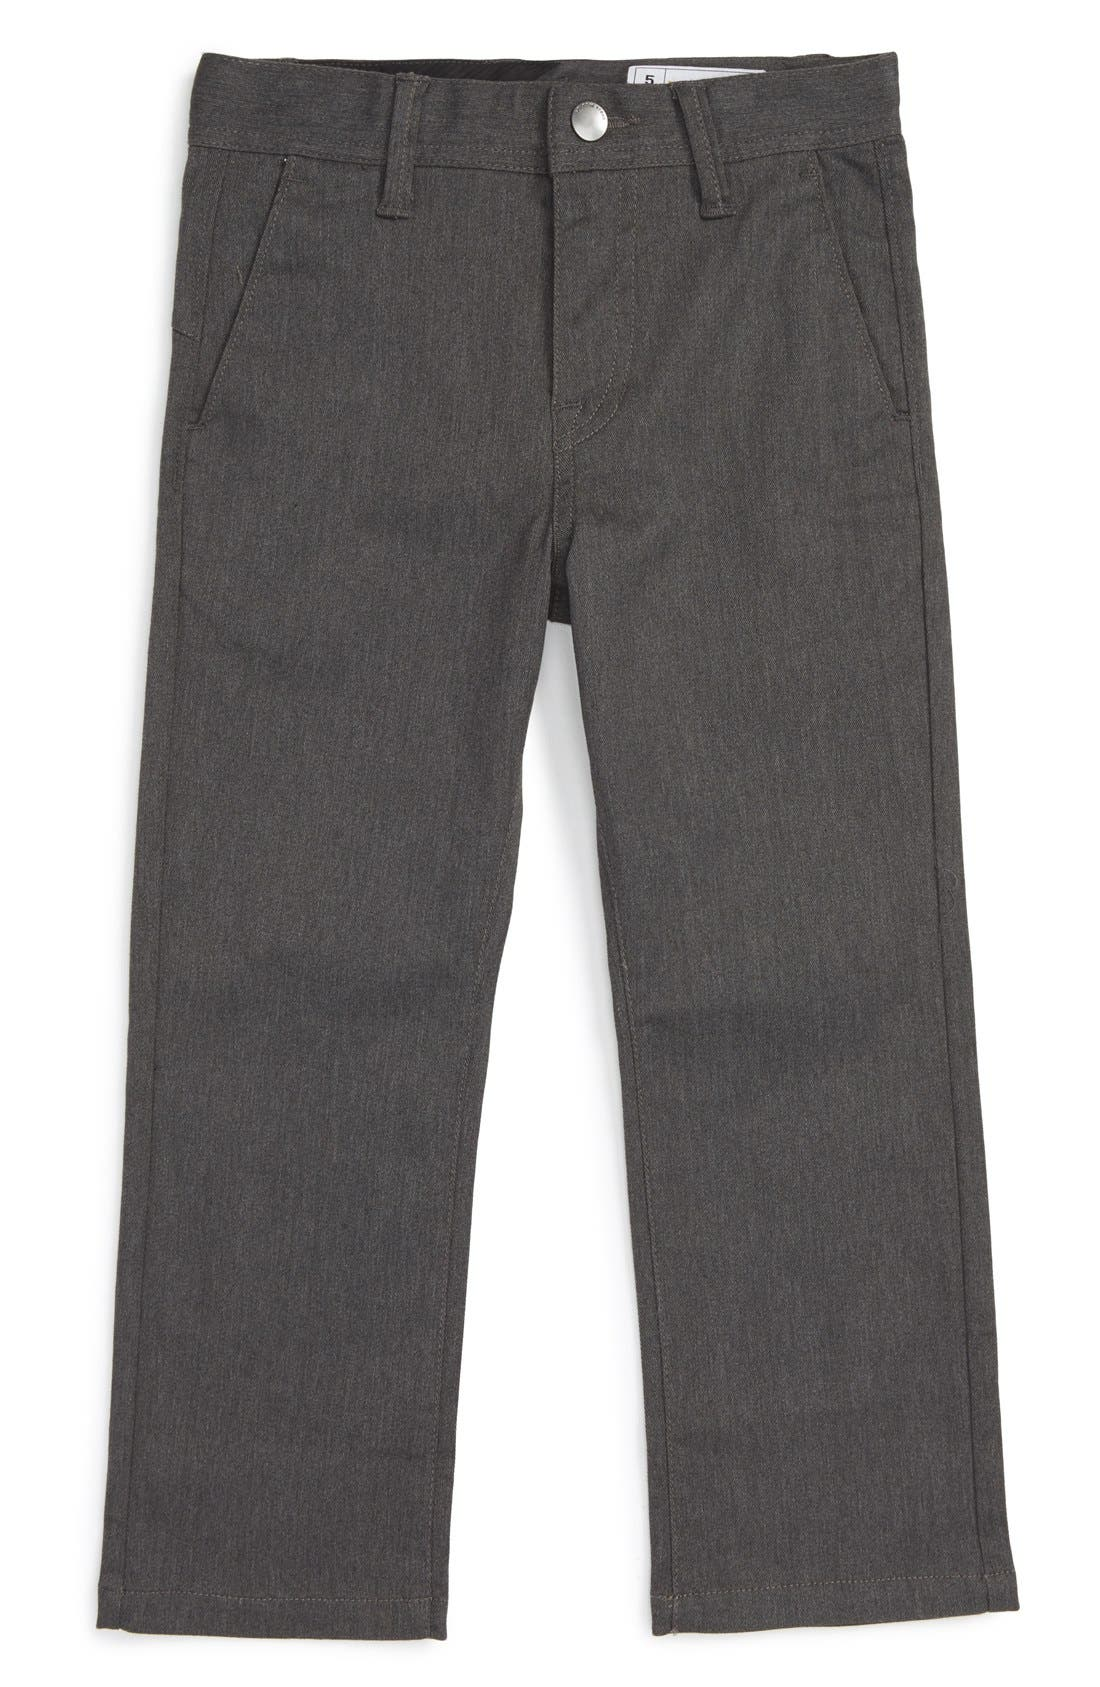 Modern Stretch Chinos,                         Main,                         color, Charcoal Heather